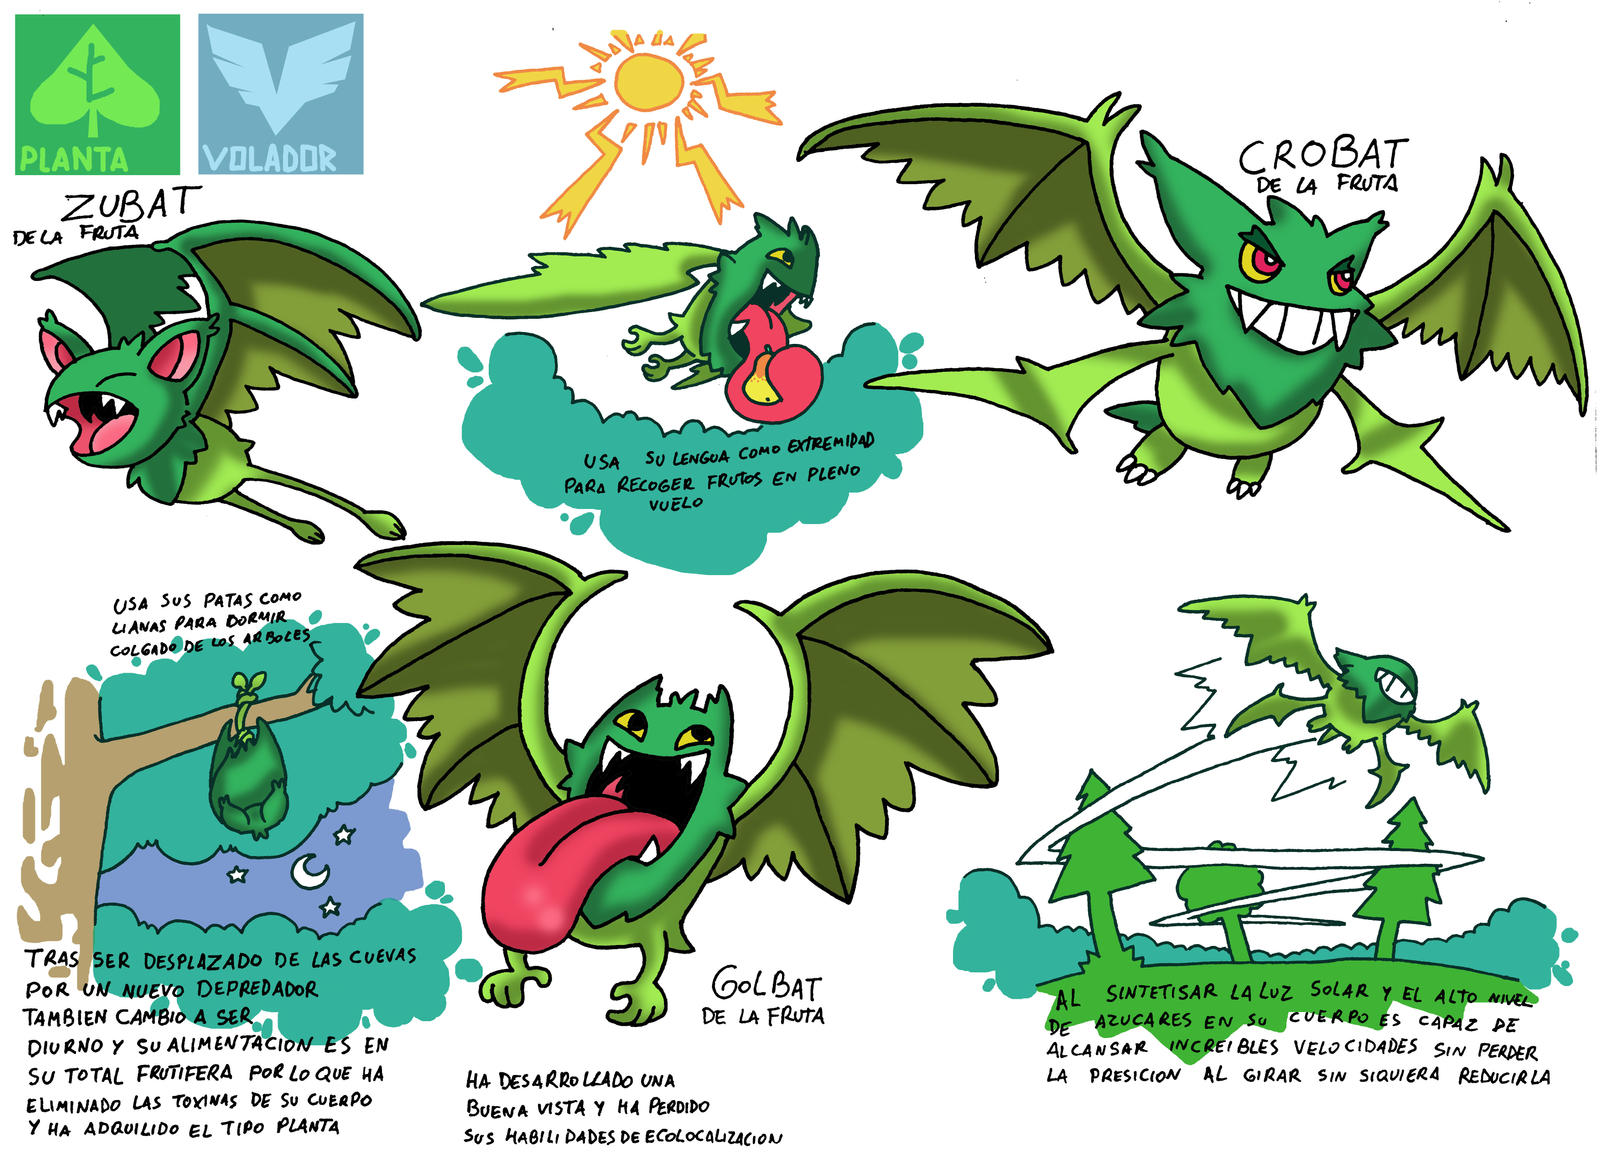 Pokemon Variante-(003) Zubat-Golpat-Crobat by emiliano-roku on ...